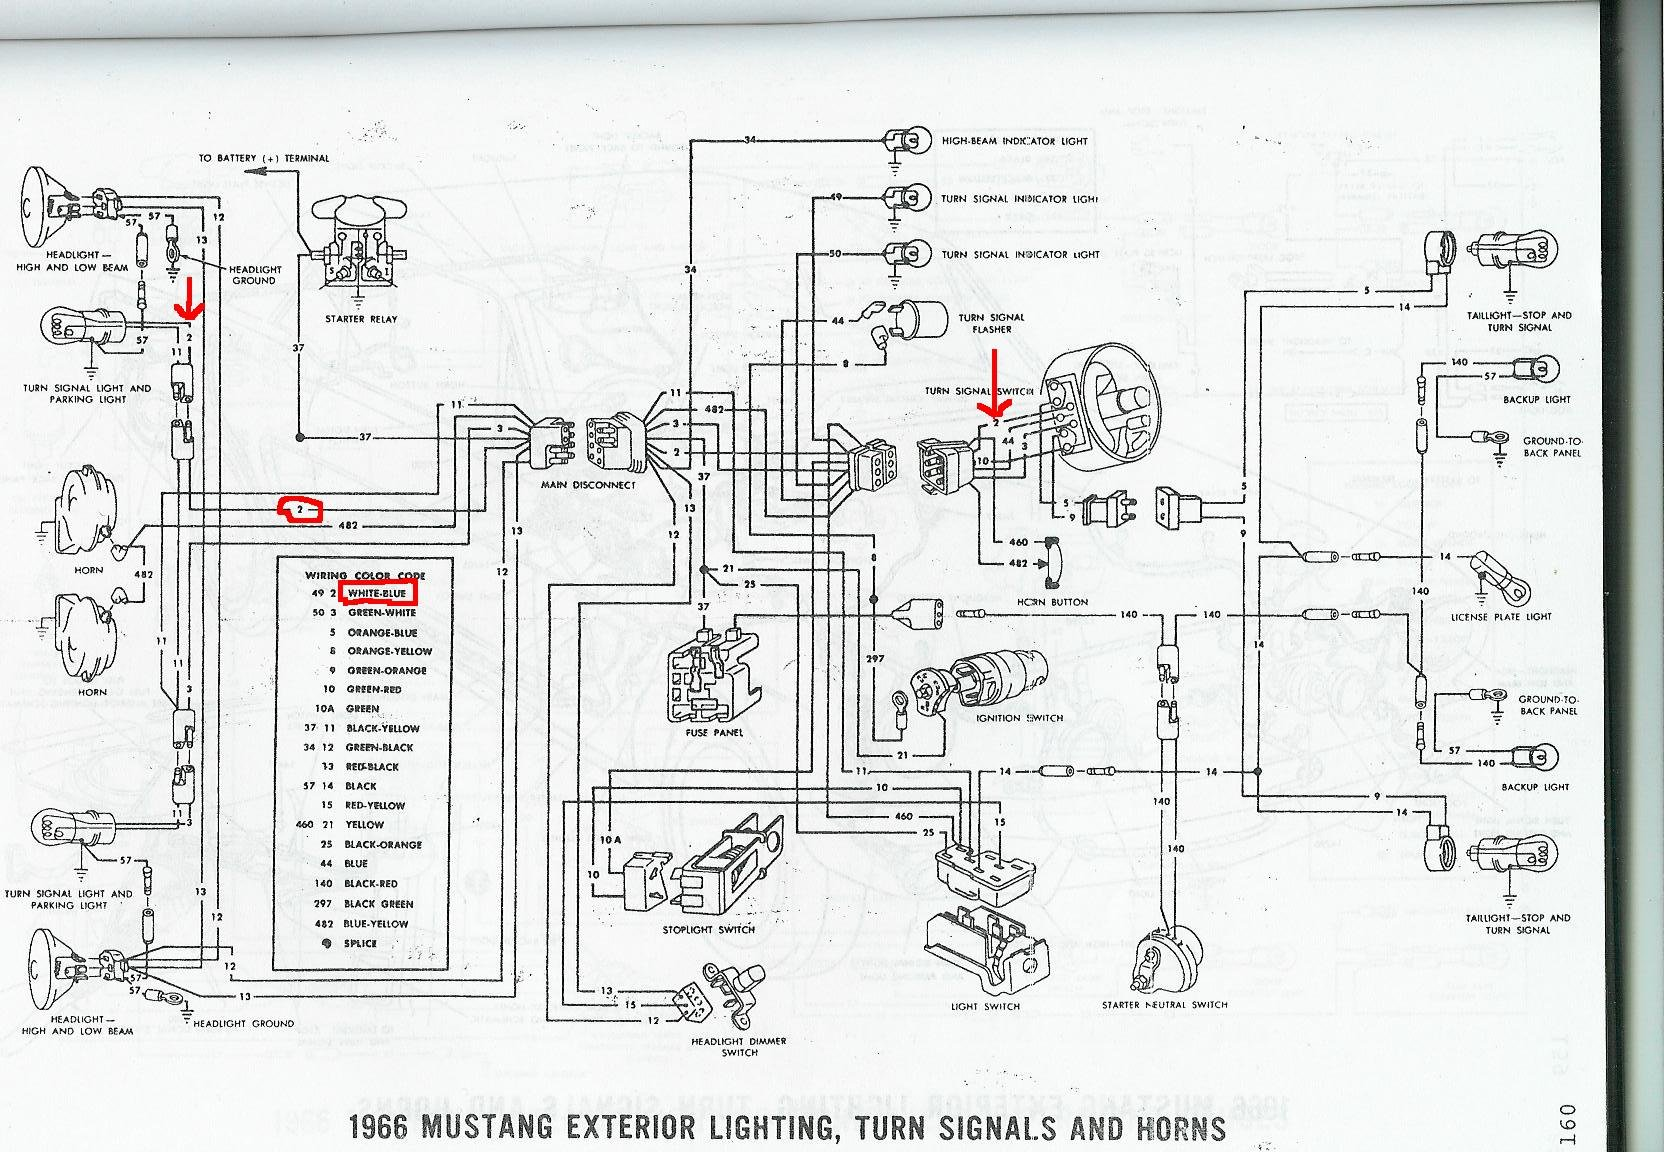 59 Chevy Wiper Switch Wiring Diagram Simple Guide About Schematic Brake Lights Always On Vintage Mustang Forums